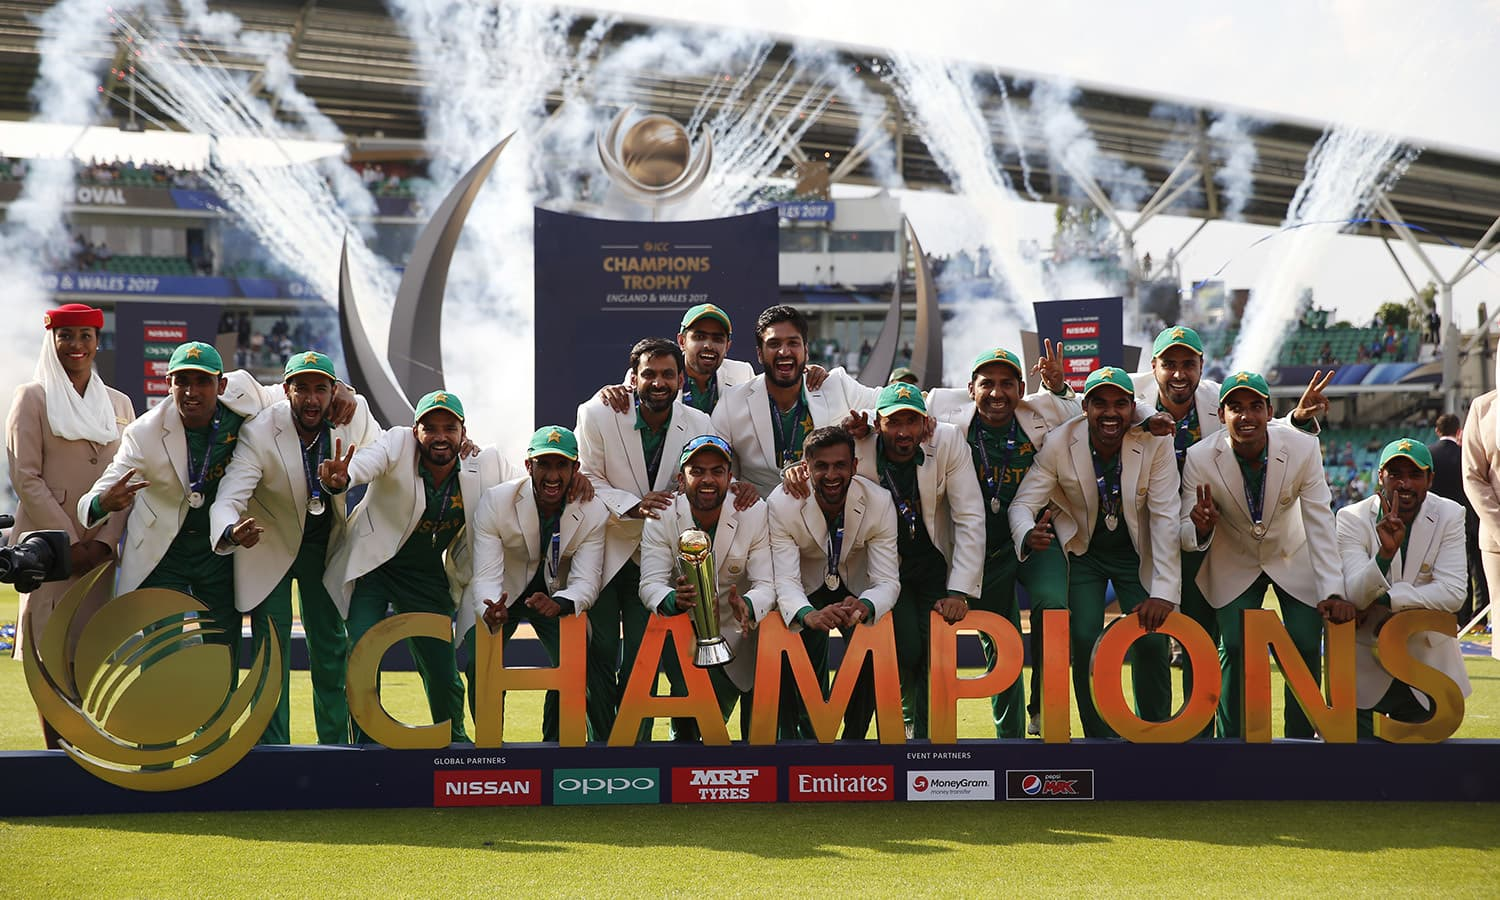 Pakistan lift the Champions Trophy after a nail-biting final match against India at the Oval in London. — Reuters